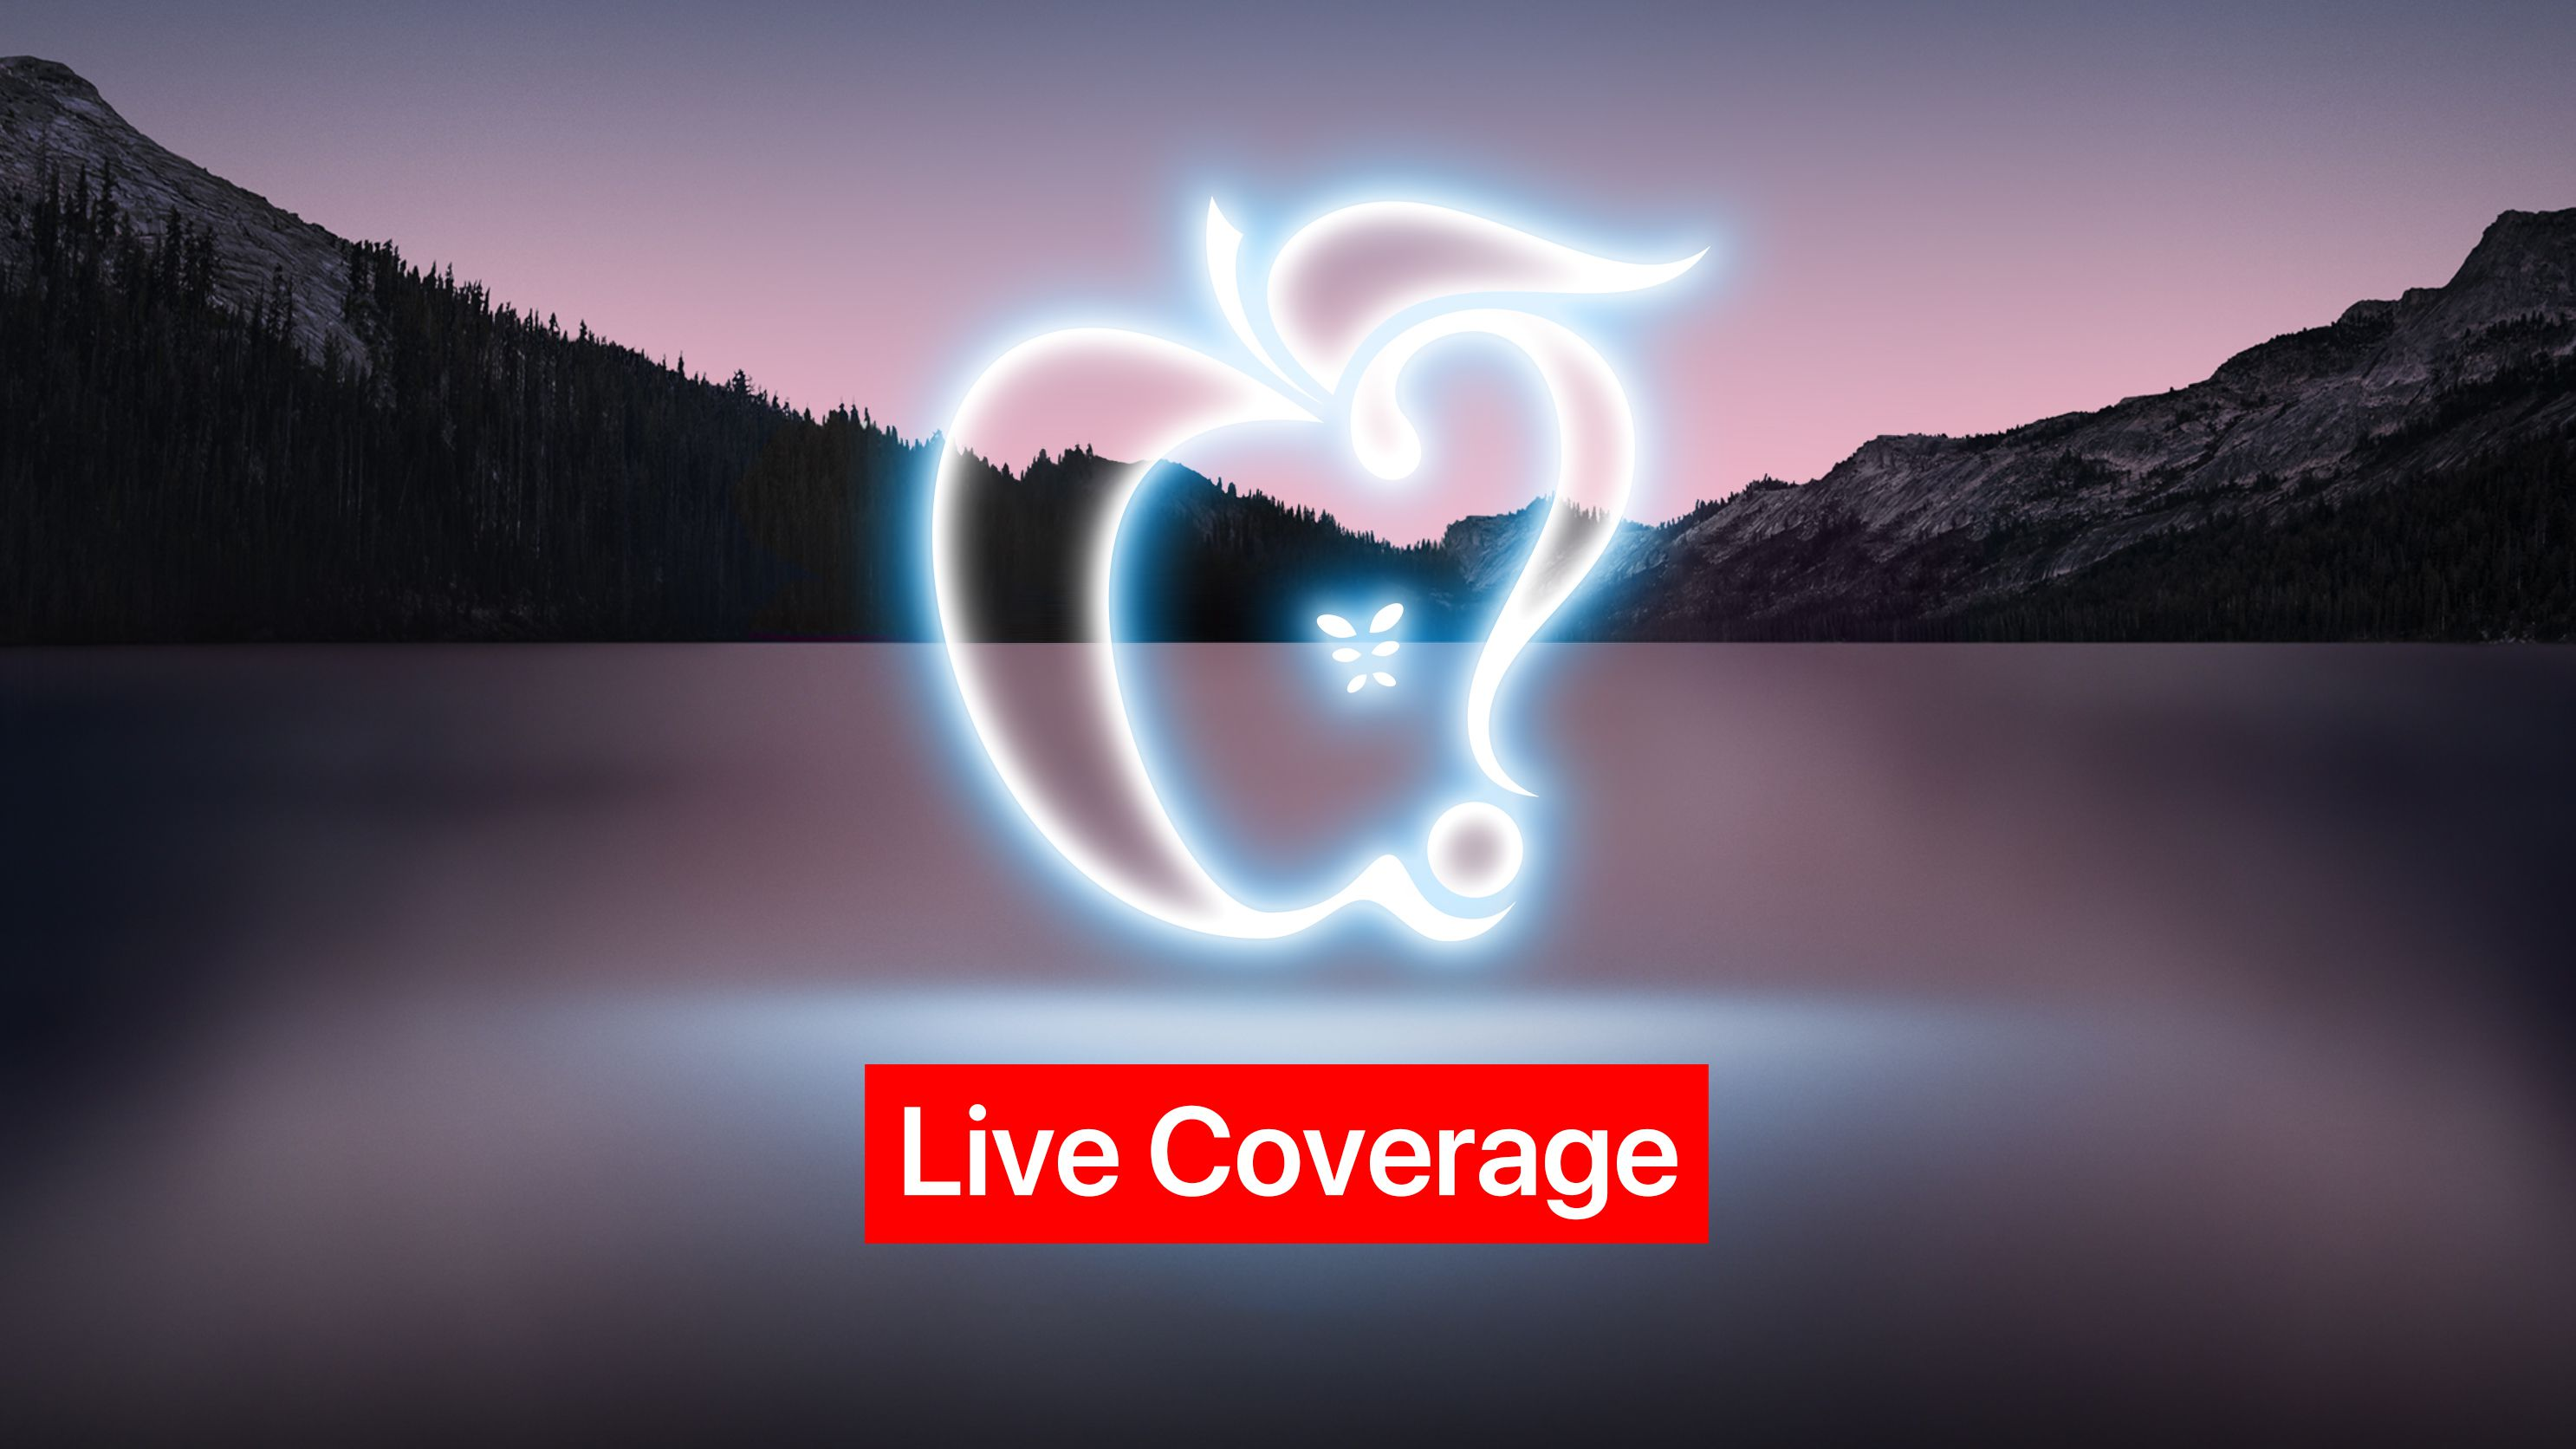 9 14 21 live coverage red 1 1.